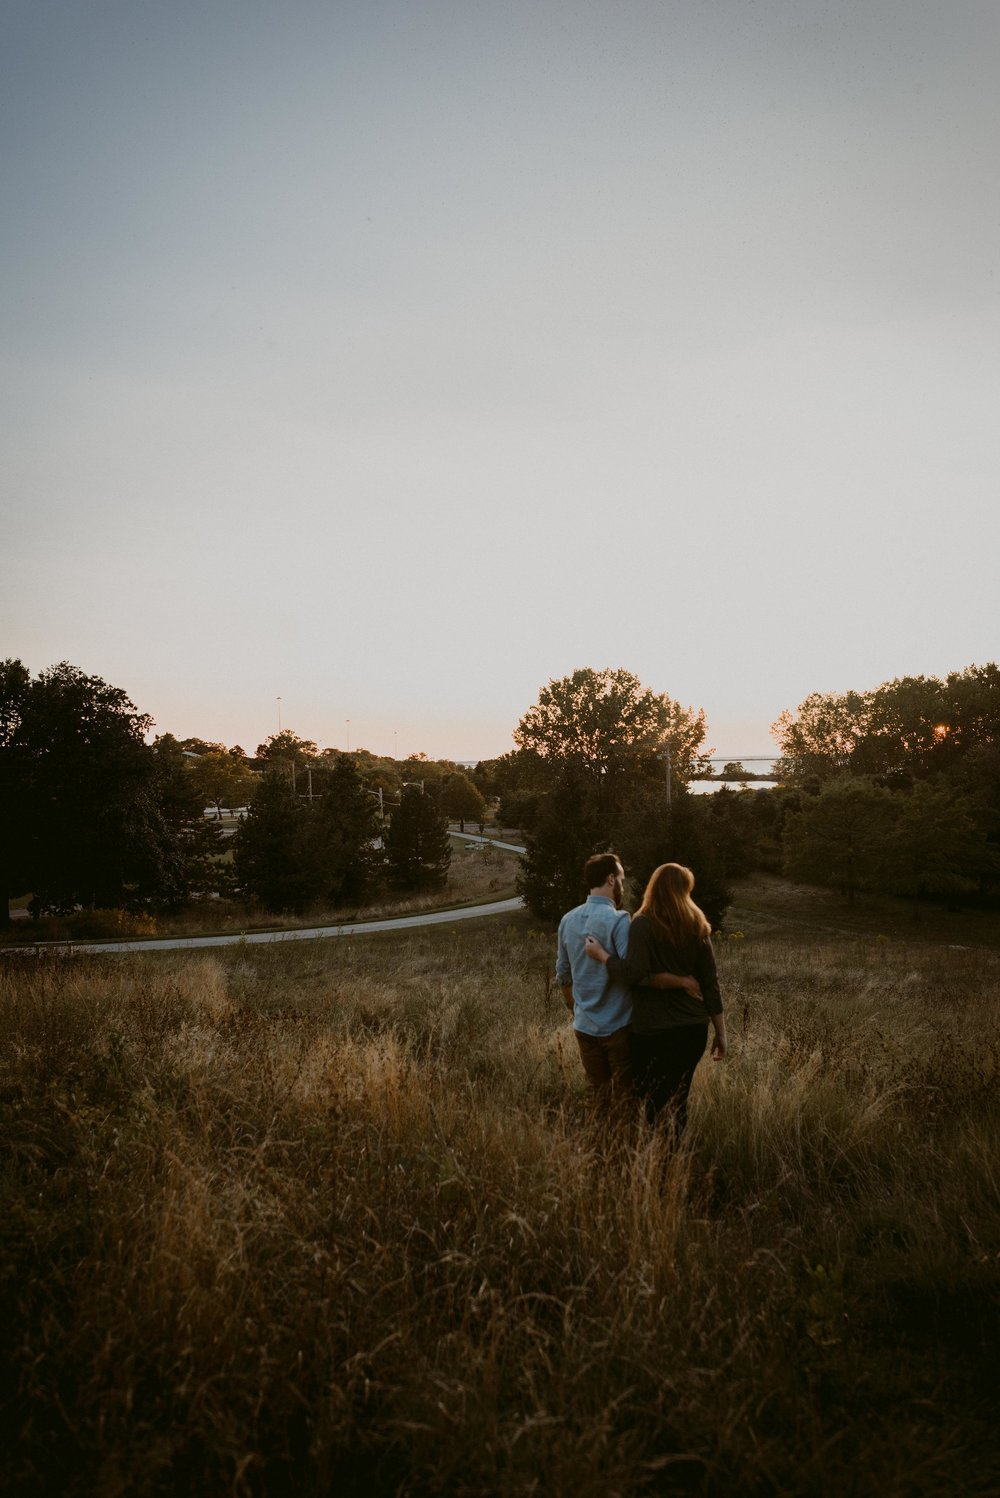 OhioCity+LakeErie-Sunset-Couples-Session_Rachel+Brian_MJPHOTO-97.jpg